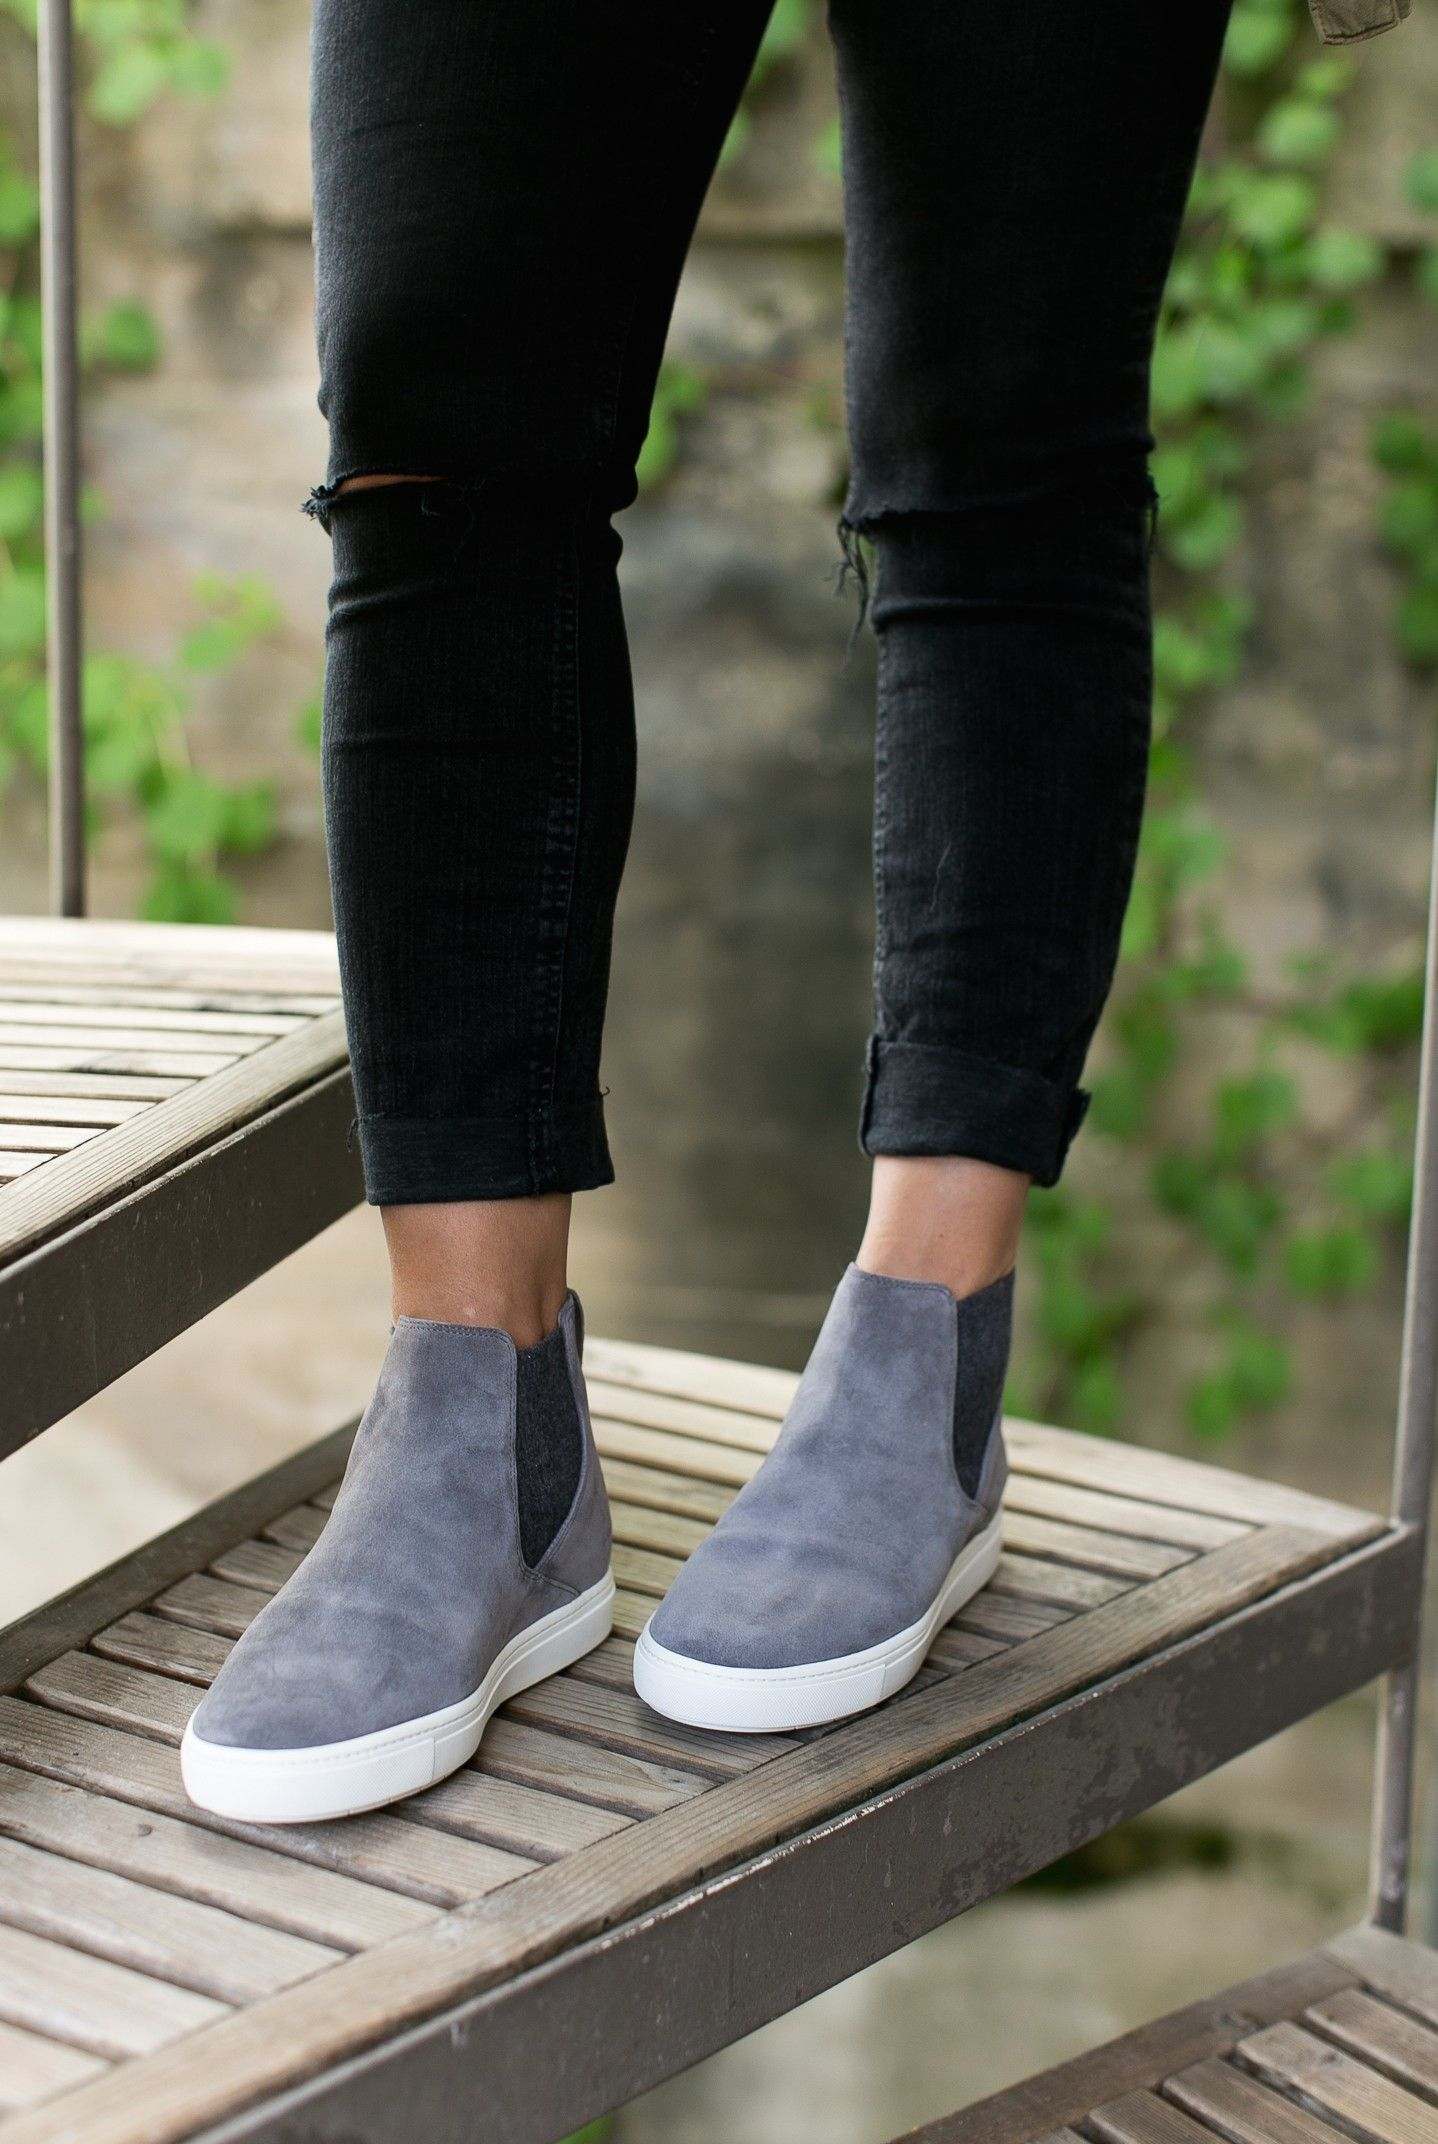 new style d9c0d ebbed These grey suede pull-on shoes are the perfect cool-meets-classic style for  fall.  Nordstrom